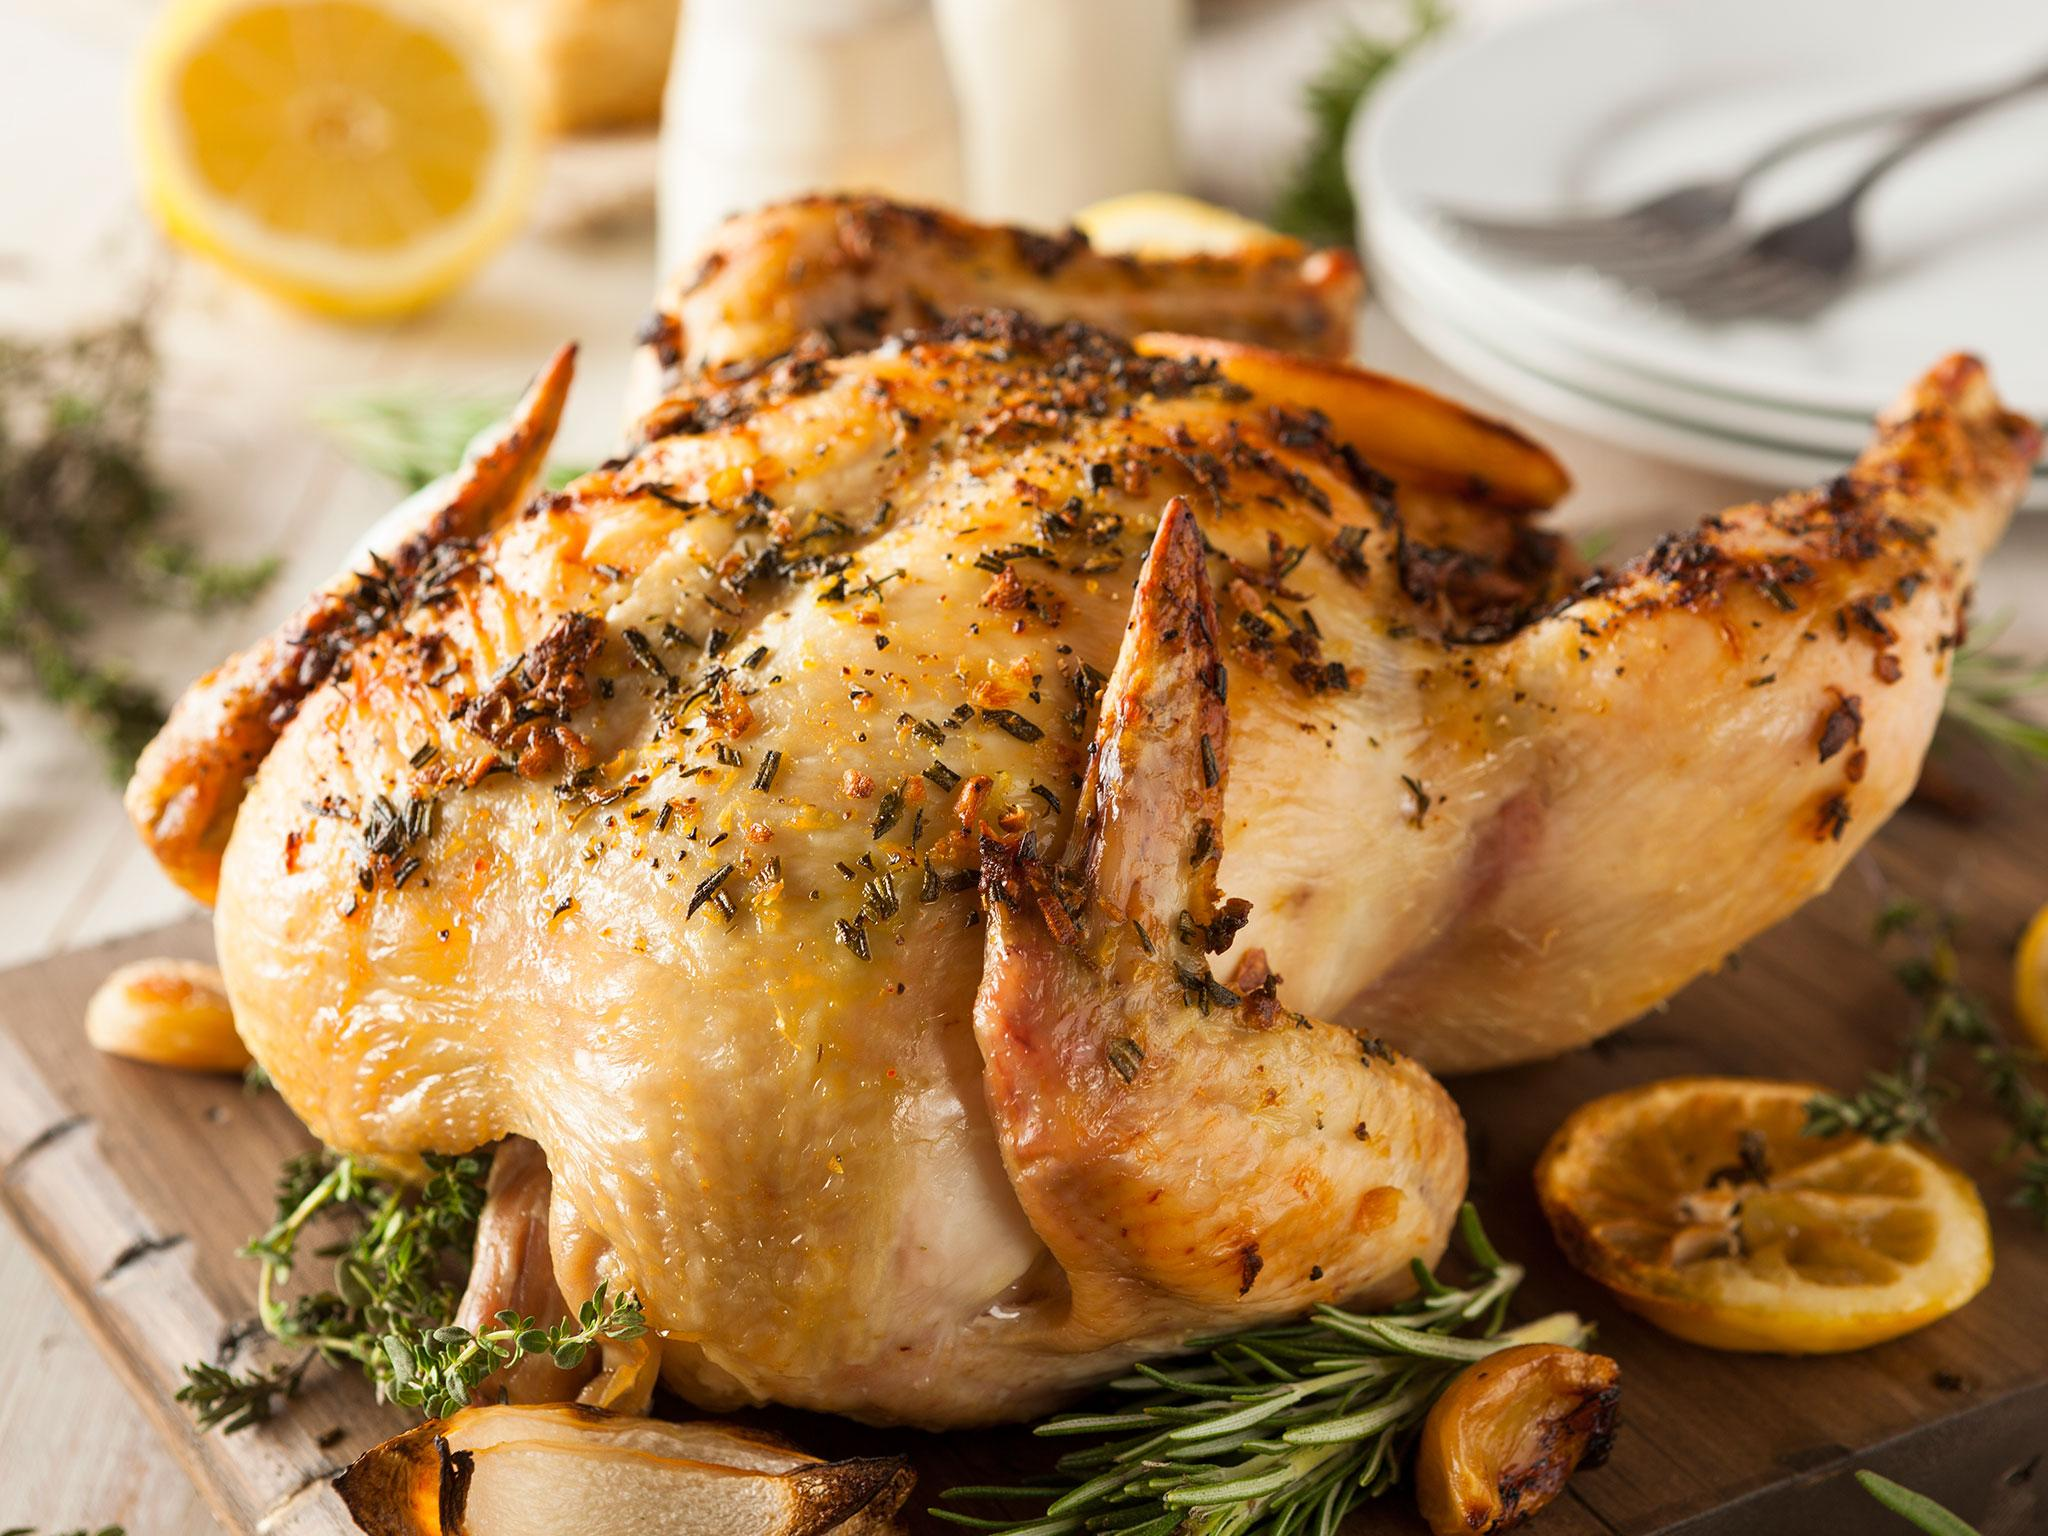 Fungus is the secret to the perfect roast chicken